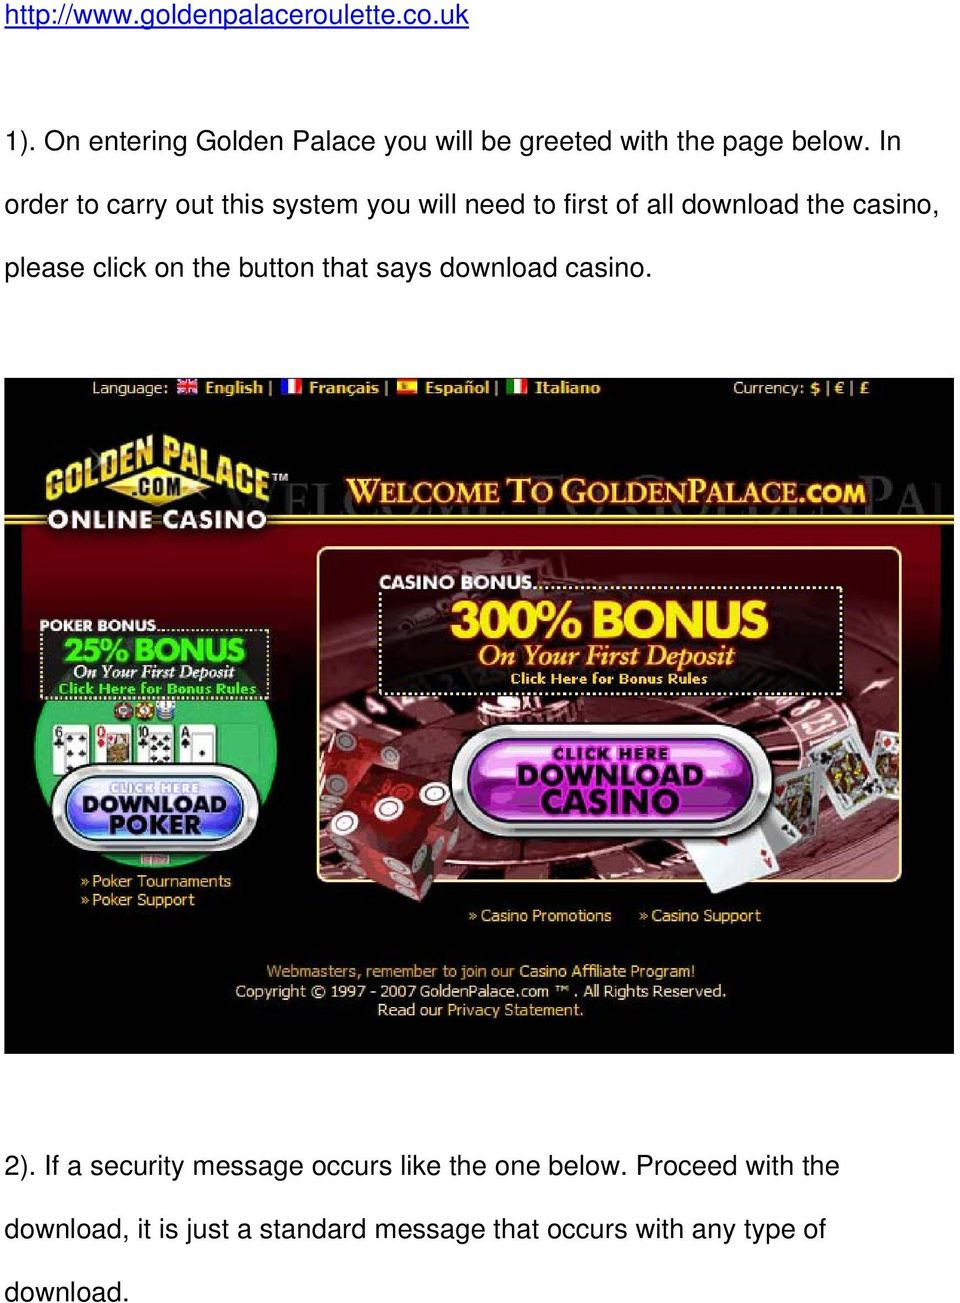 In order to carry out this system you will need to first of all download the casino, please click